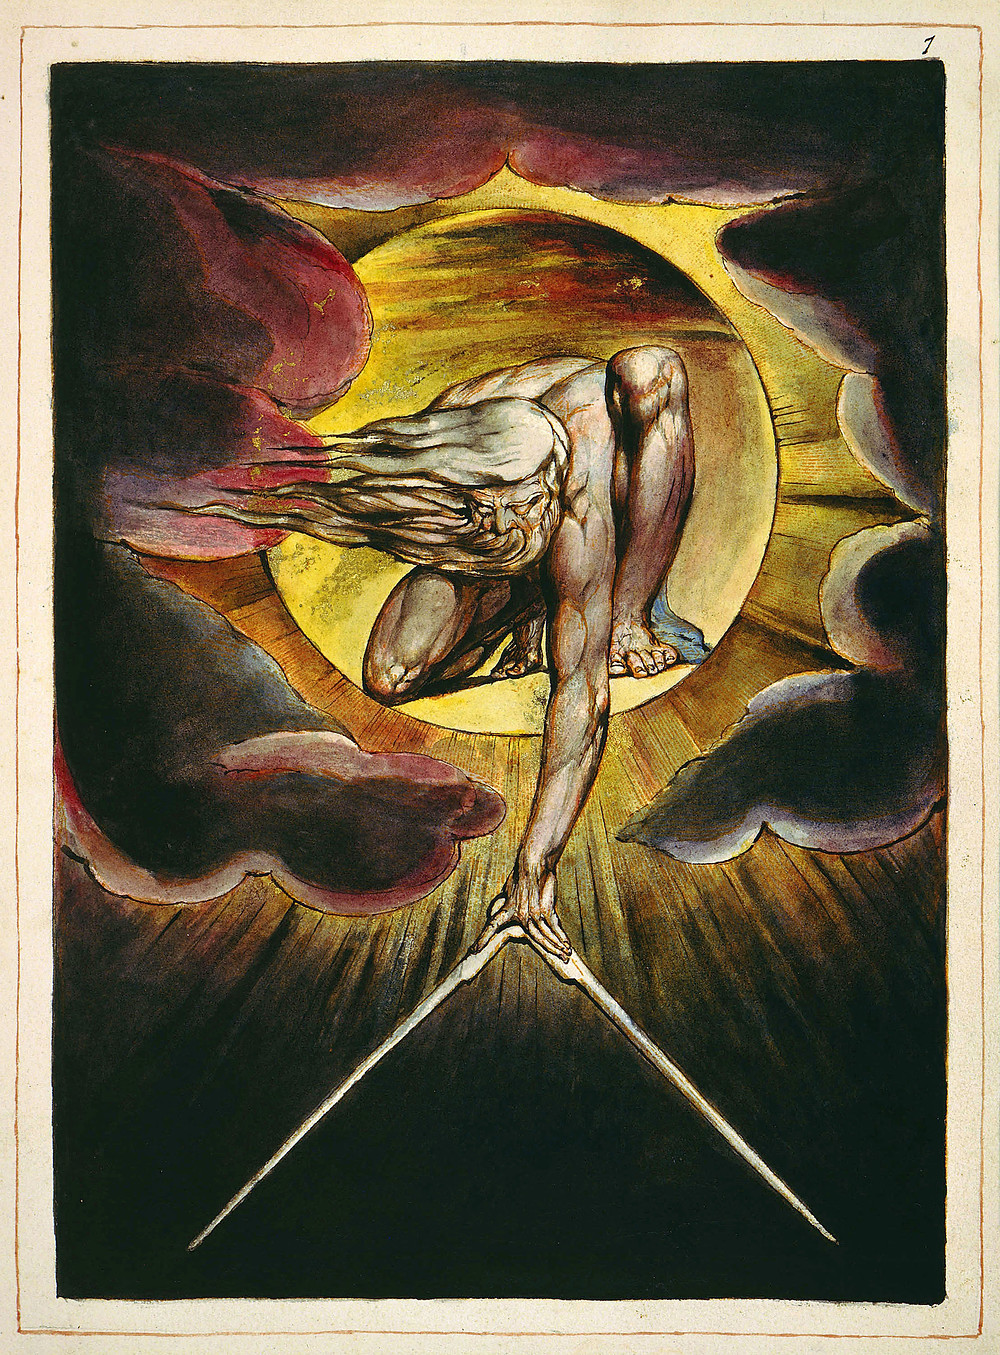 A man with flowing white hair and beard, and blind eyes kneels within a sun blaze, his left arm is stretched down holding a pair of compasses. Dark clouds surround the sun blaze.